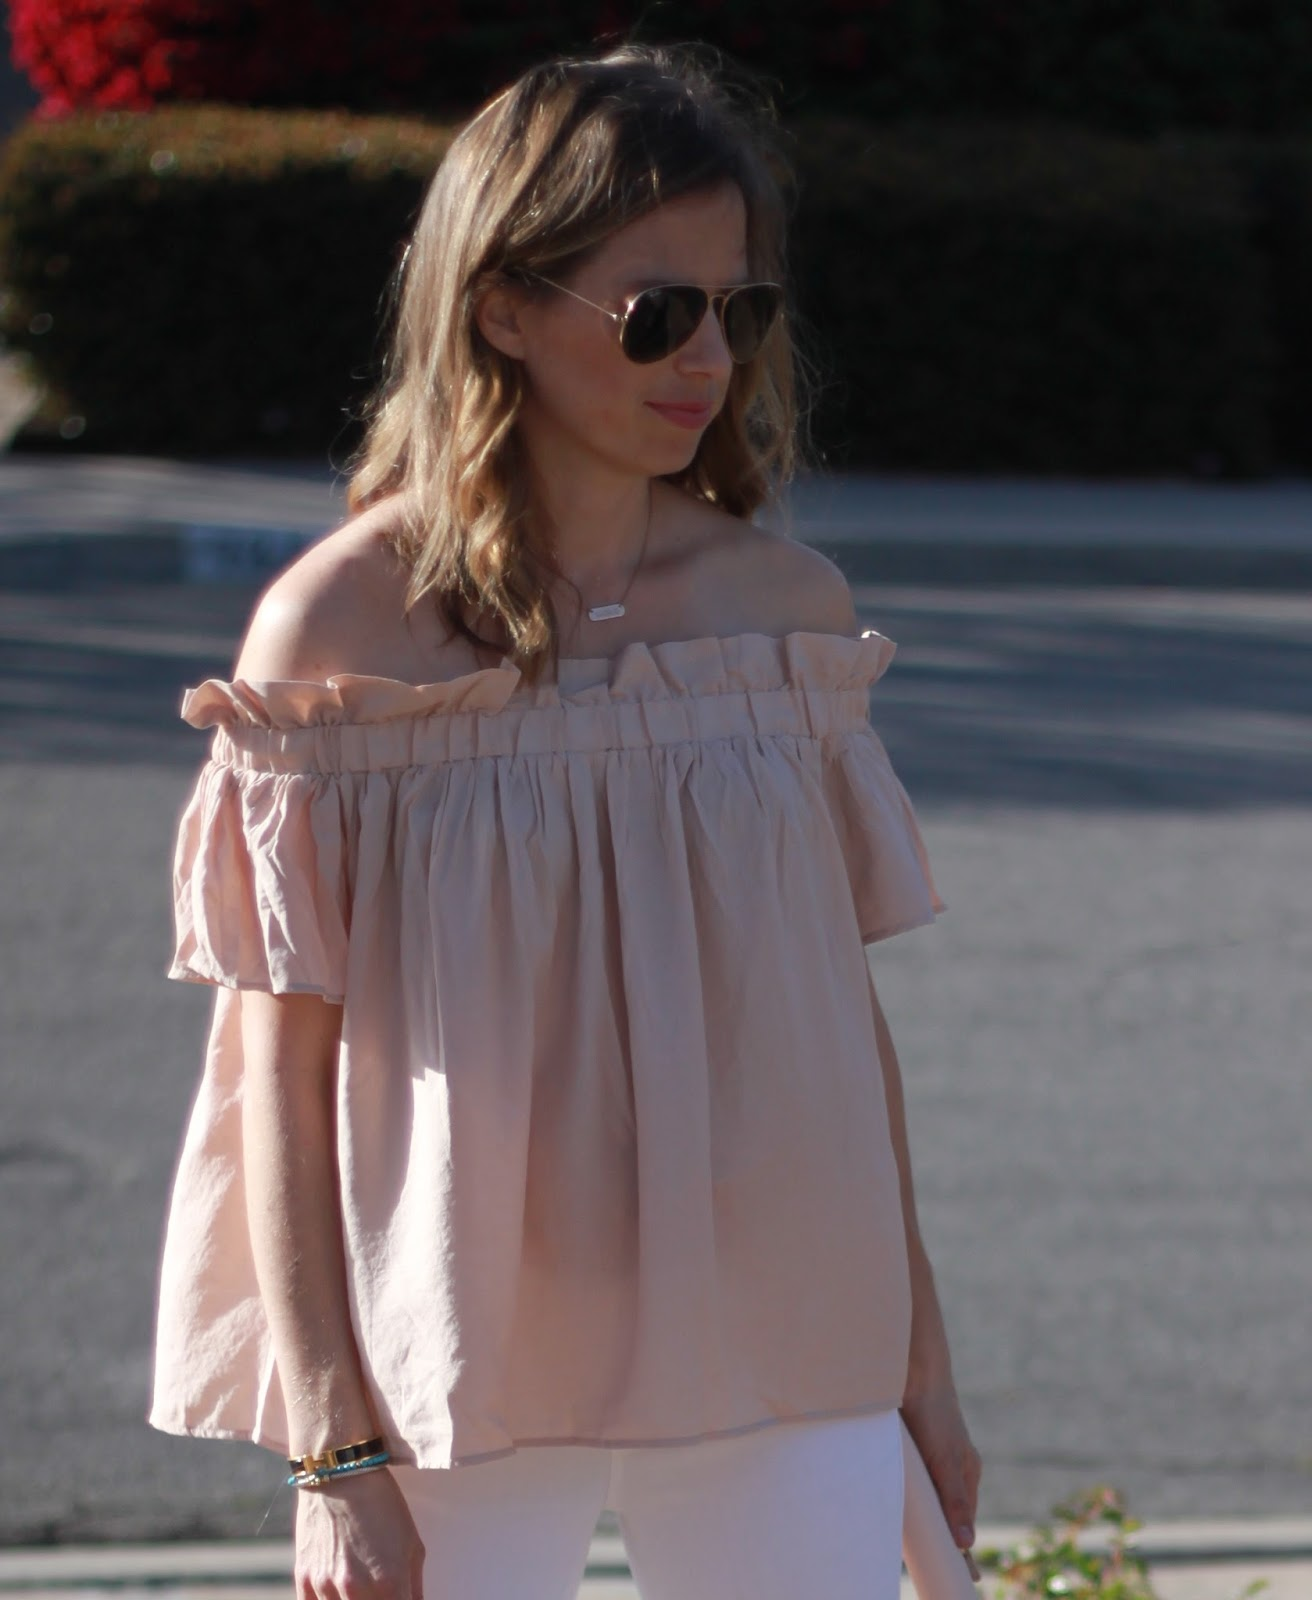 off the shoulder and ray bans